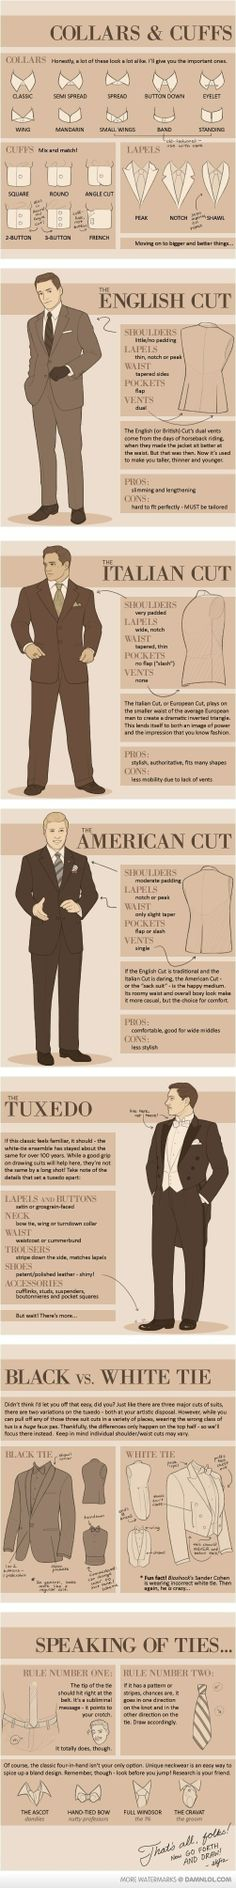 Men's suit styles explained. Make your men's suit shopping experience much easier!